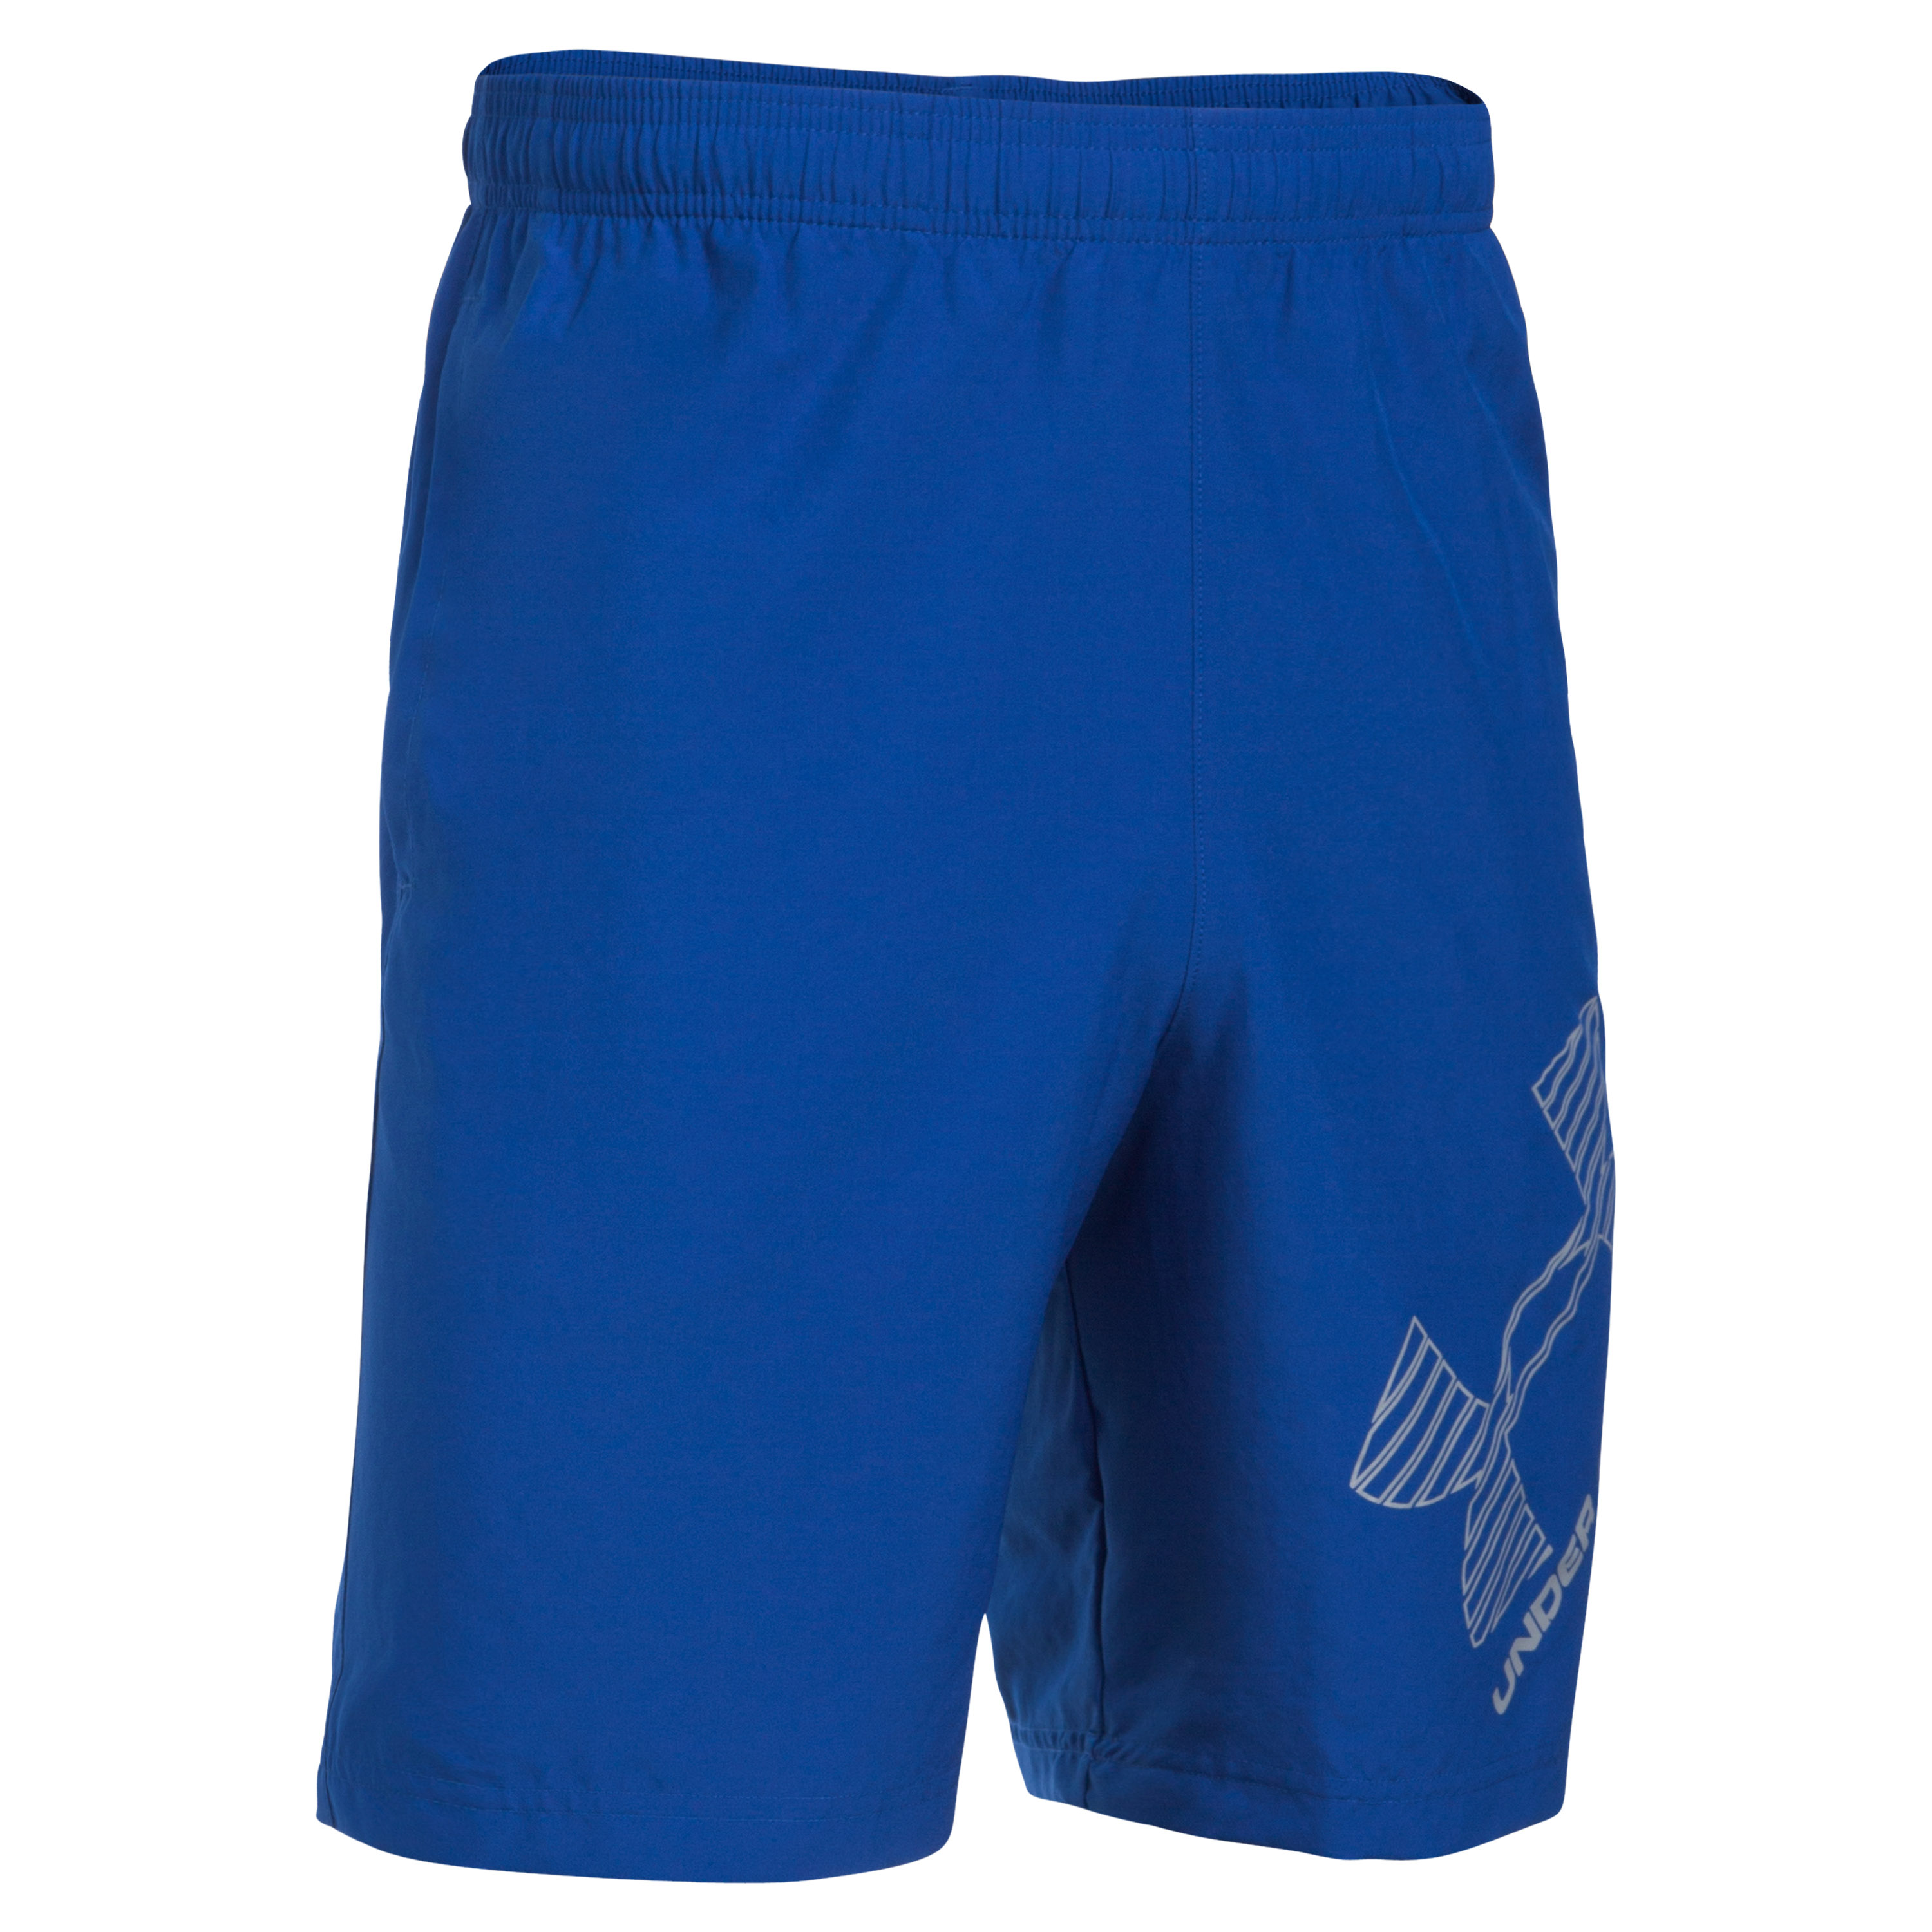 Under Armour Fitness Short Woven Graphic blue